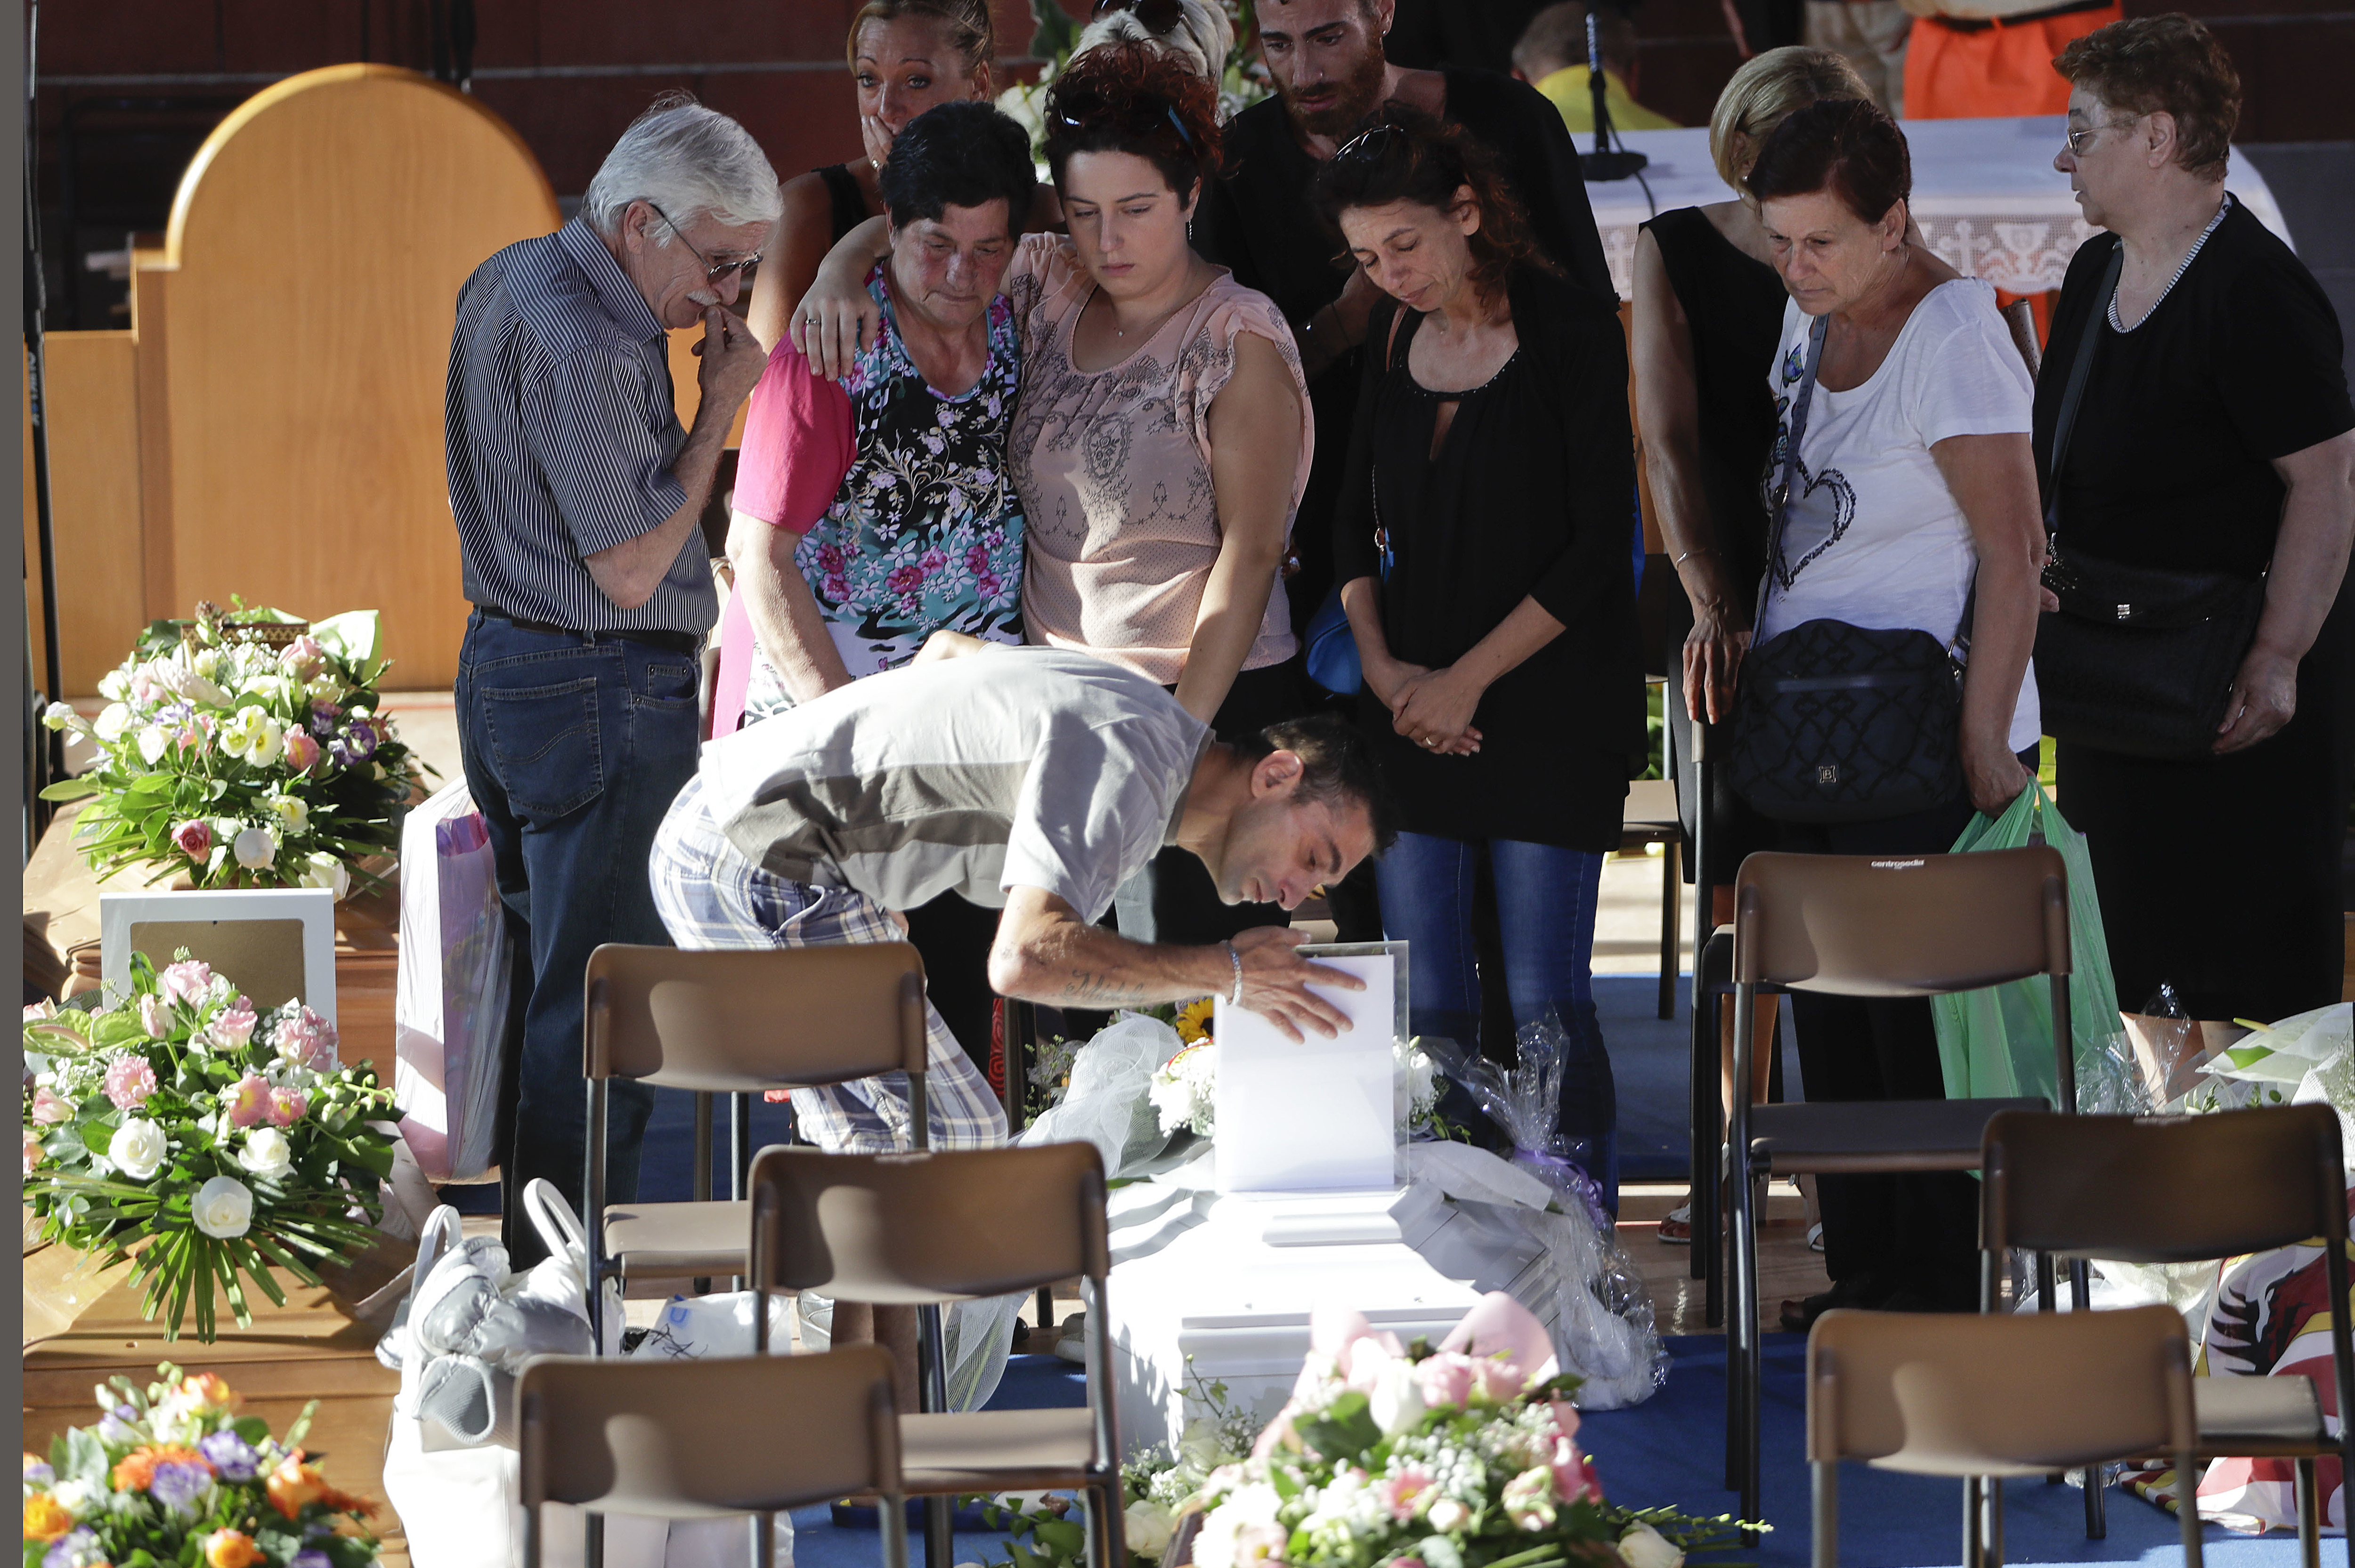 Relatives mourn over a coffin of one of the earthquake victims prior to the start of the funeral service on Saturday in Ascoli Piceno, Italy. Gregorio Borgia/AP